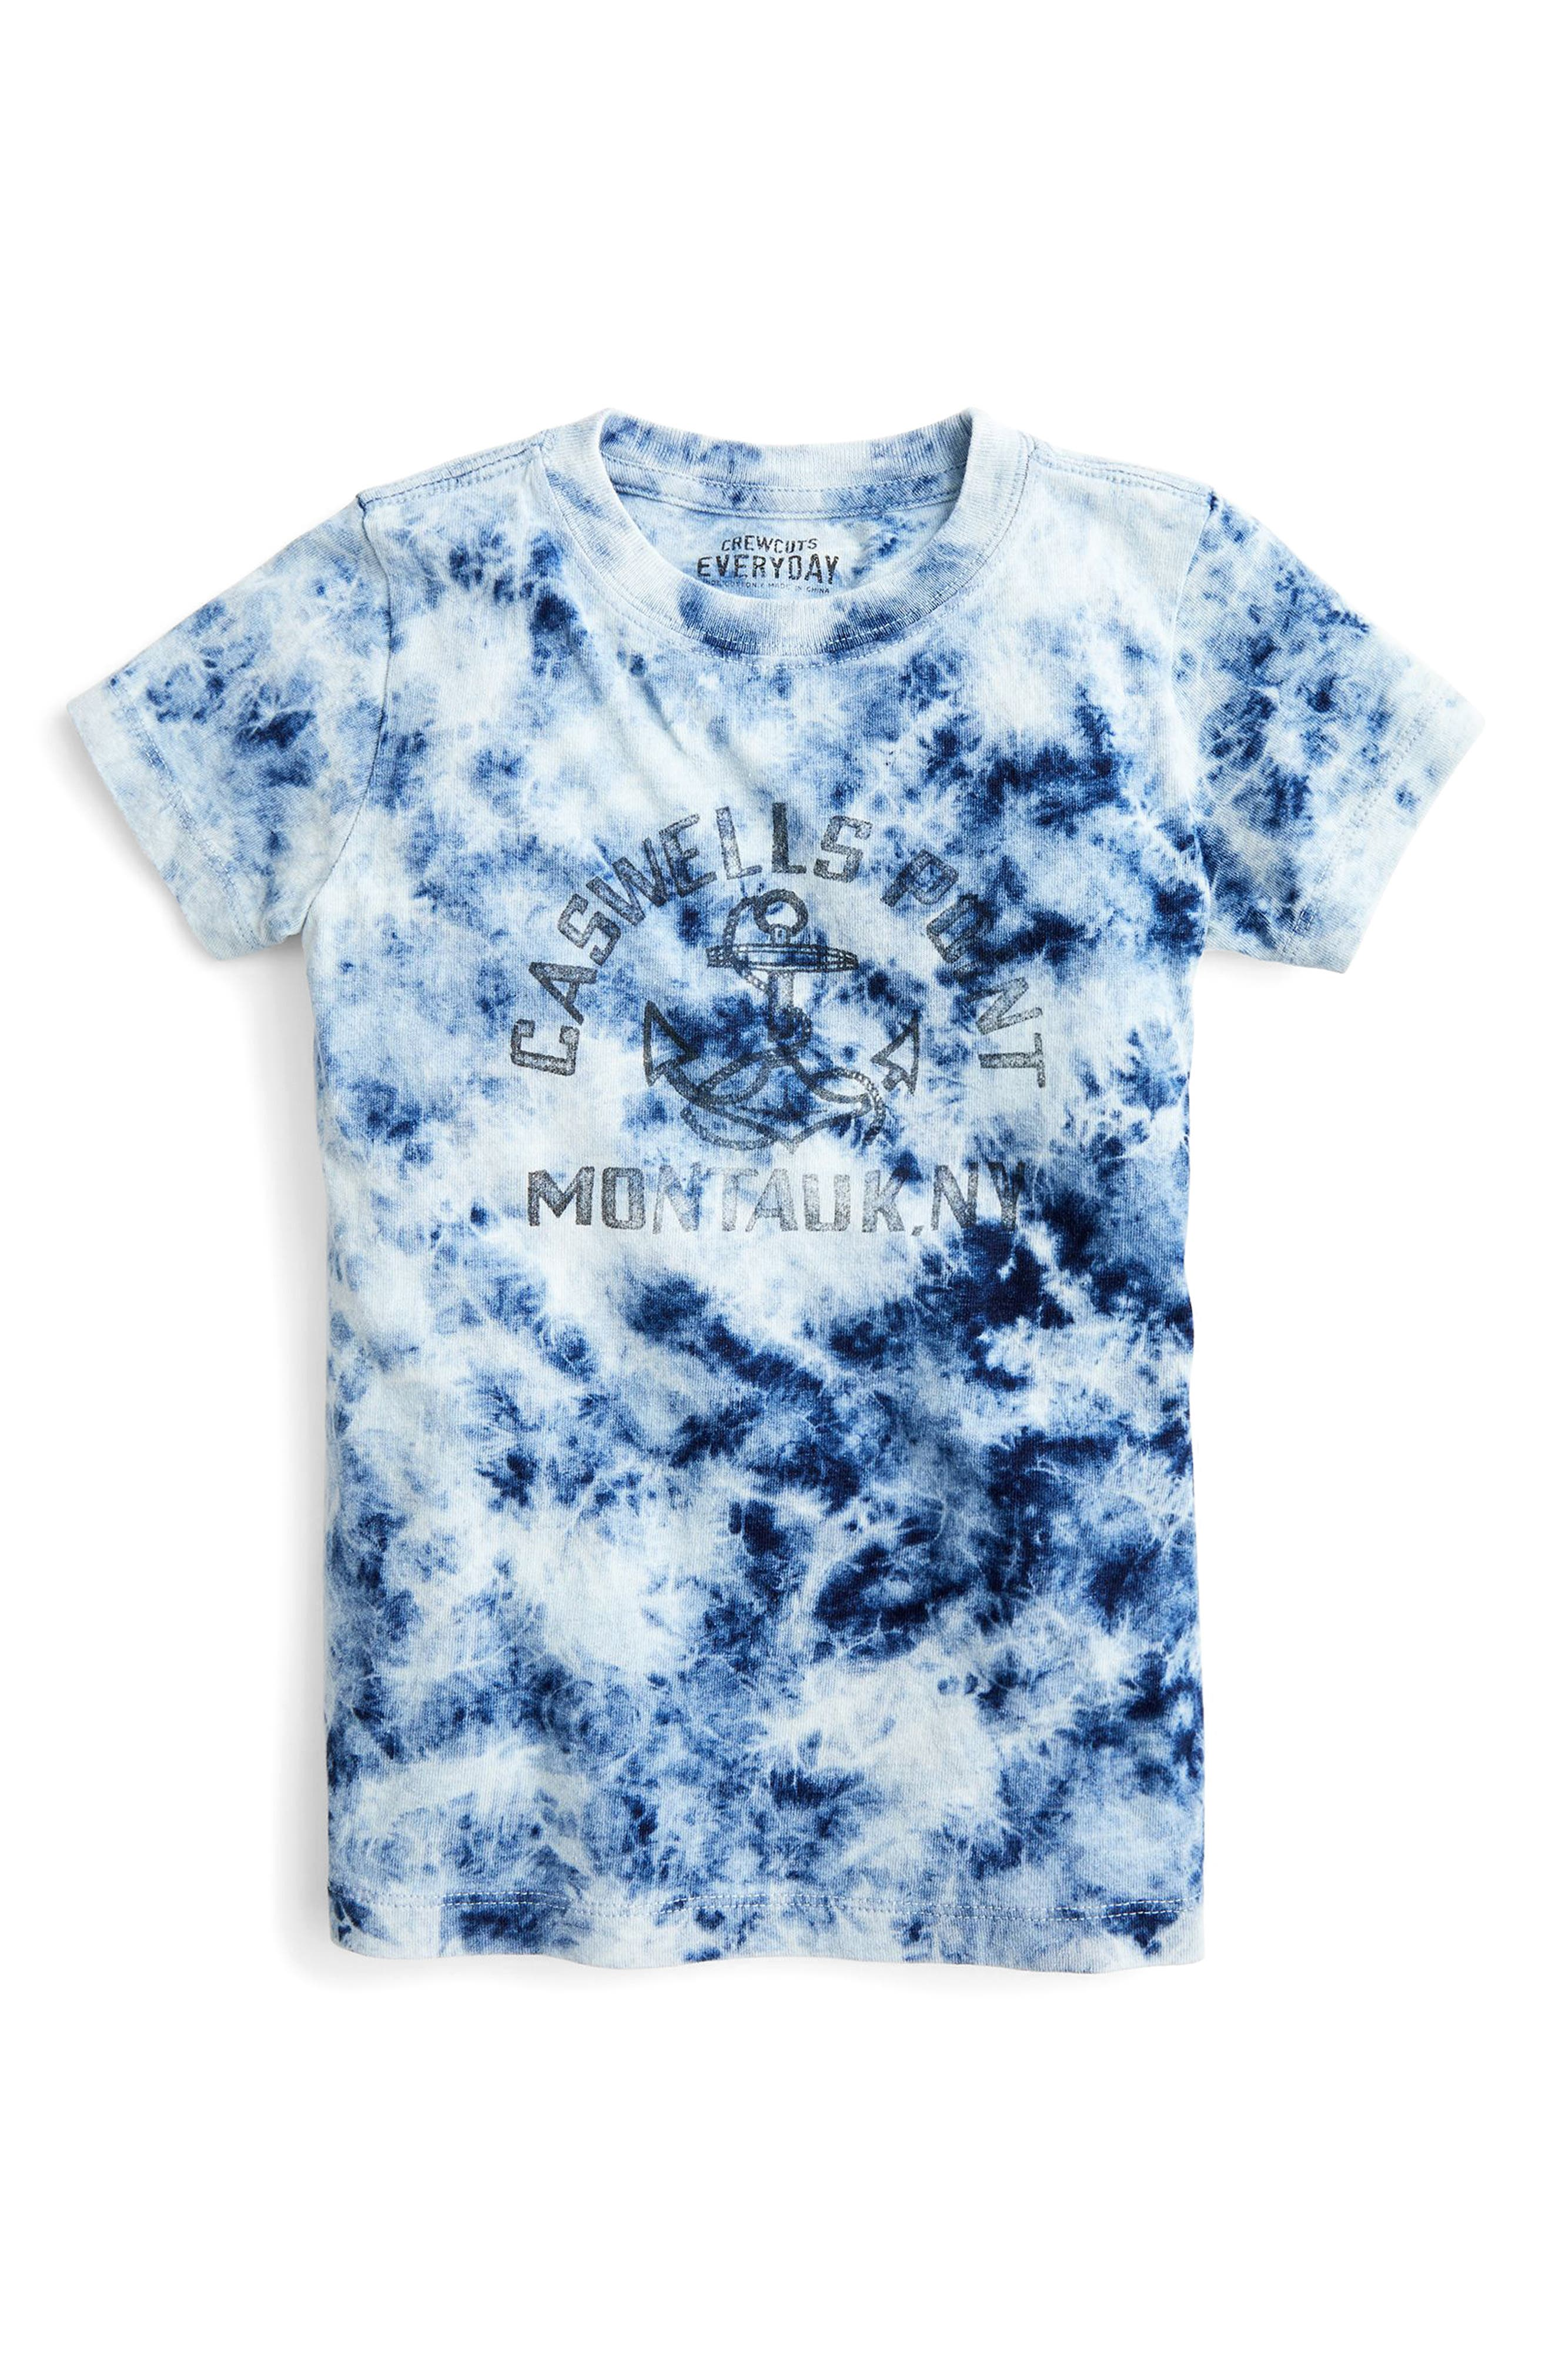 Montauk Tie Dye T-Shirt,                             Main thumbnail 1, color,                             Medium Wash